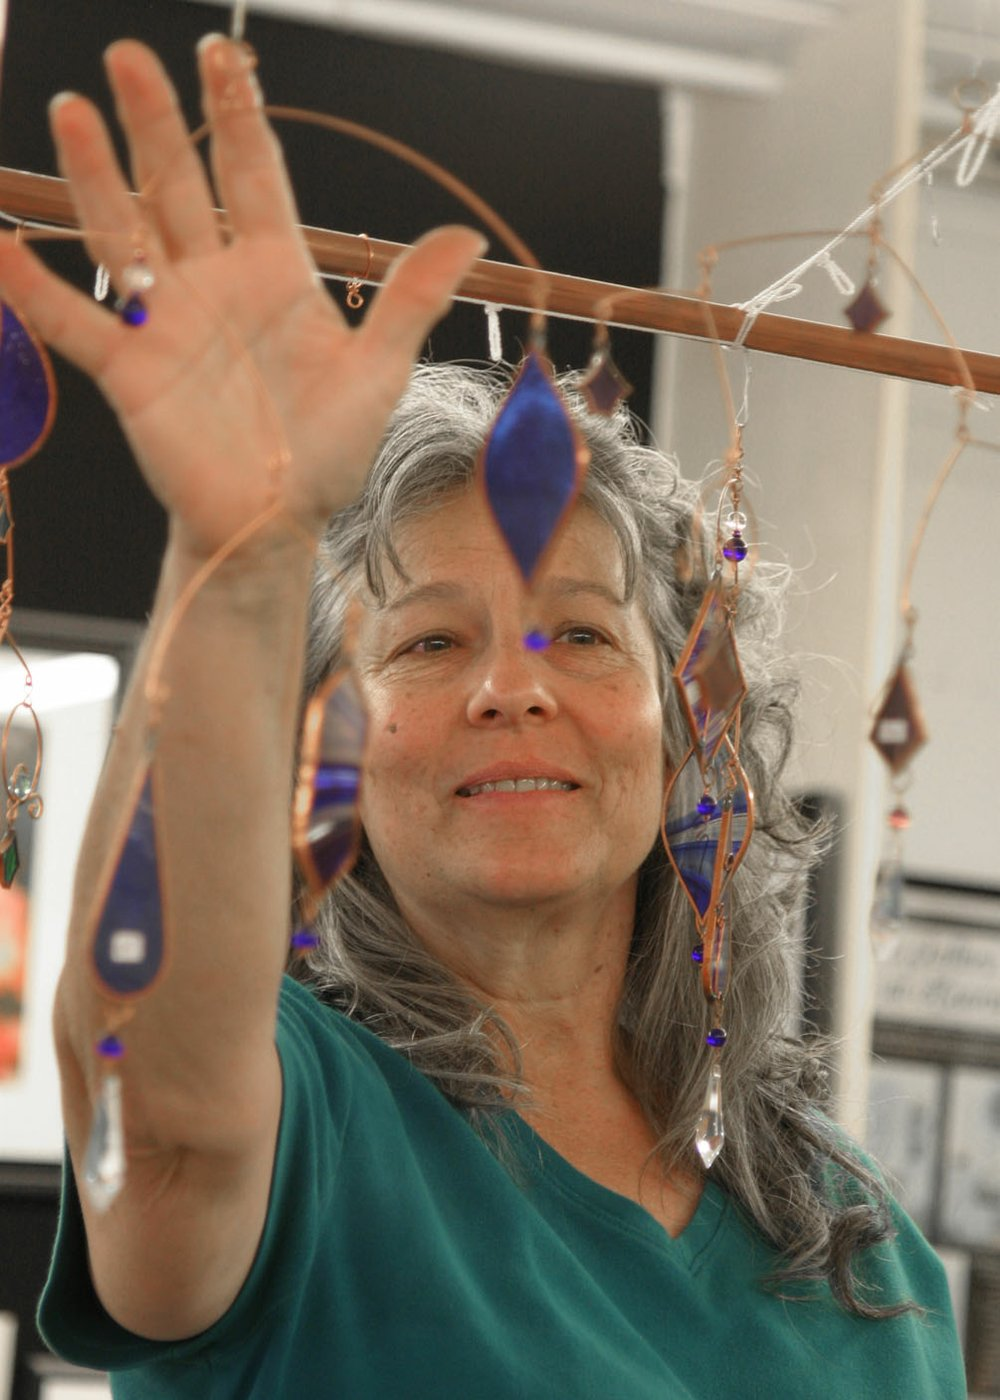 Anita and Edward Hejtmanek brought together their creative talents and their heart for the community in Heartwood Gallery, which operated in south Fayetteville for 19 years. The artists' cooperative closed Dec. 31. (NWA Democrat-Gazette / File Photos)